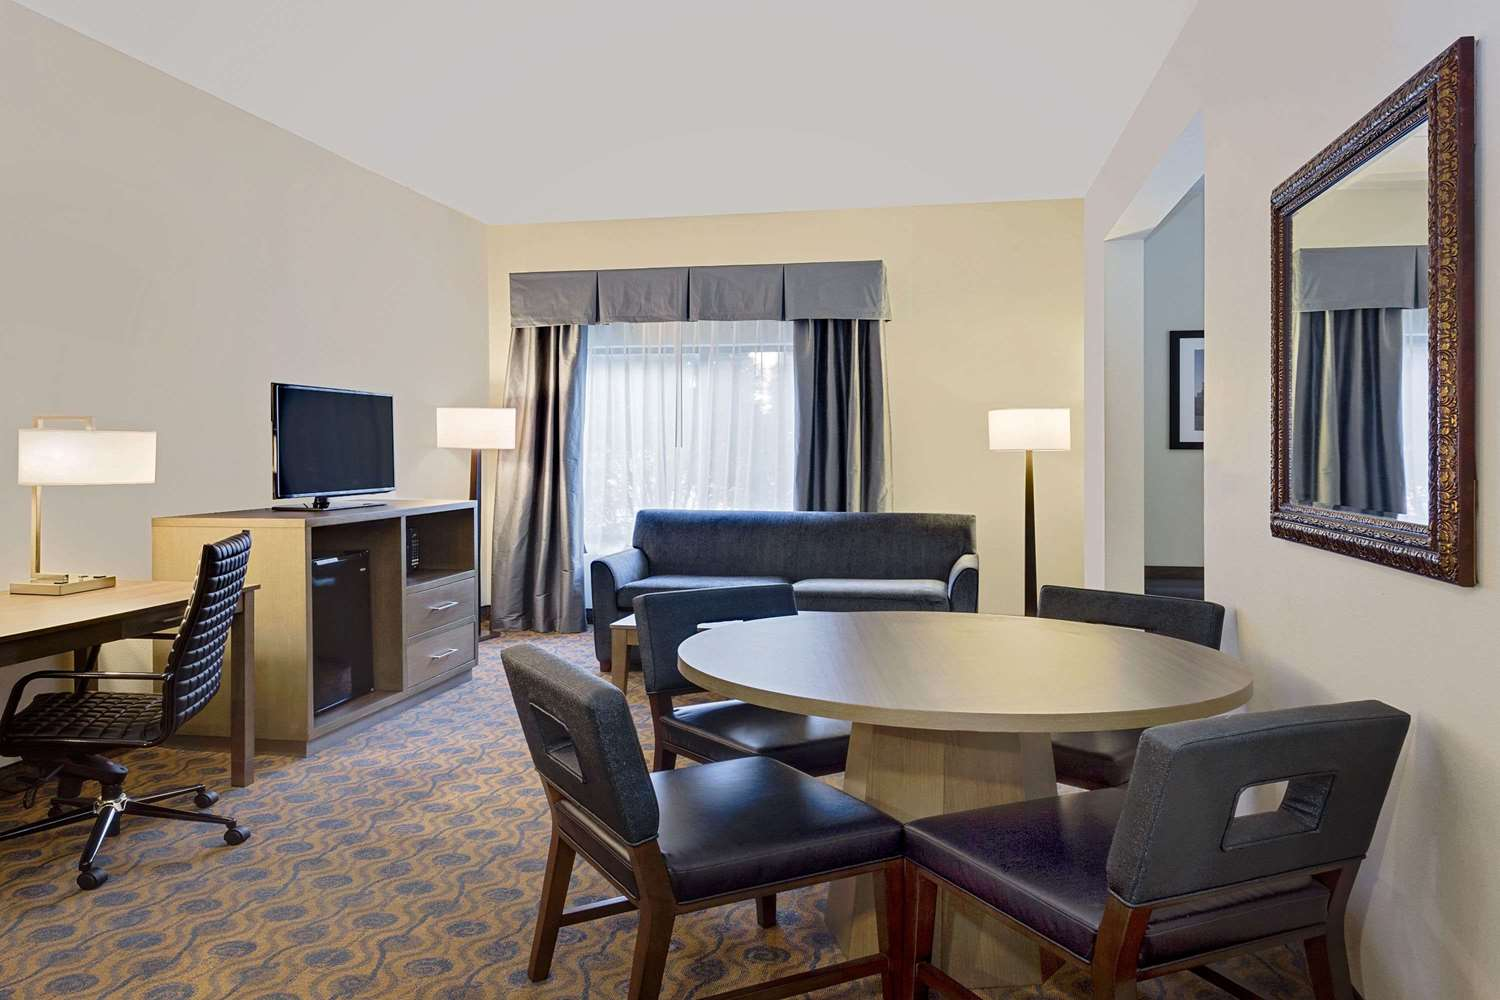 Cash Pool Mannheim Wingate By Wyndham Hotel Arlington Heights, Il - See Discounts